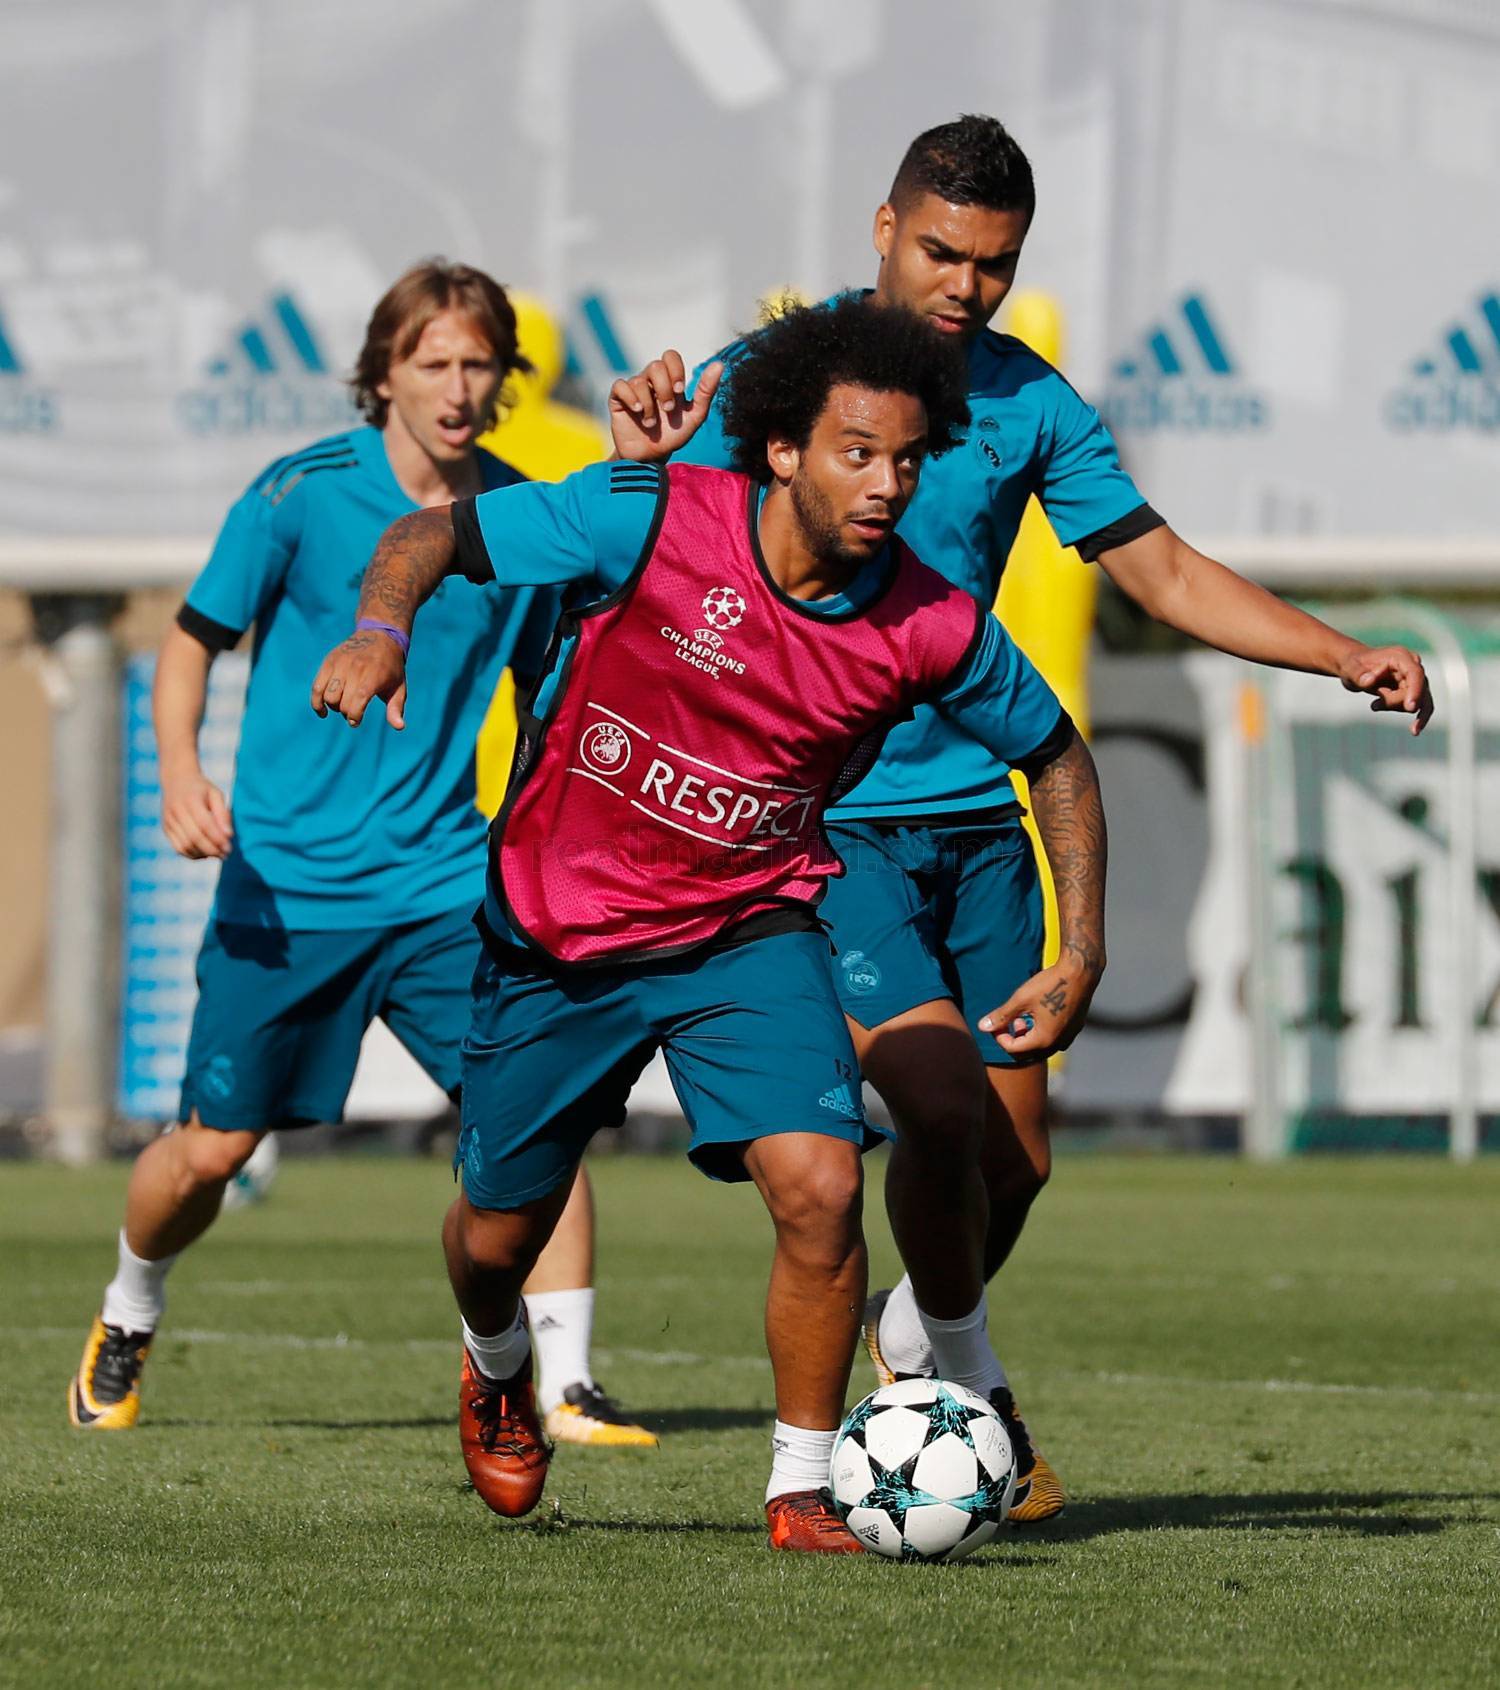 Real Madrid - Entrenamiento del Real Madrid - 16-10-2017